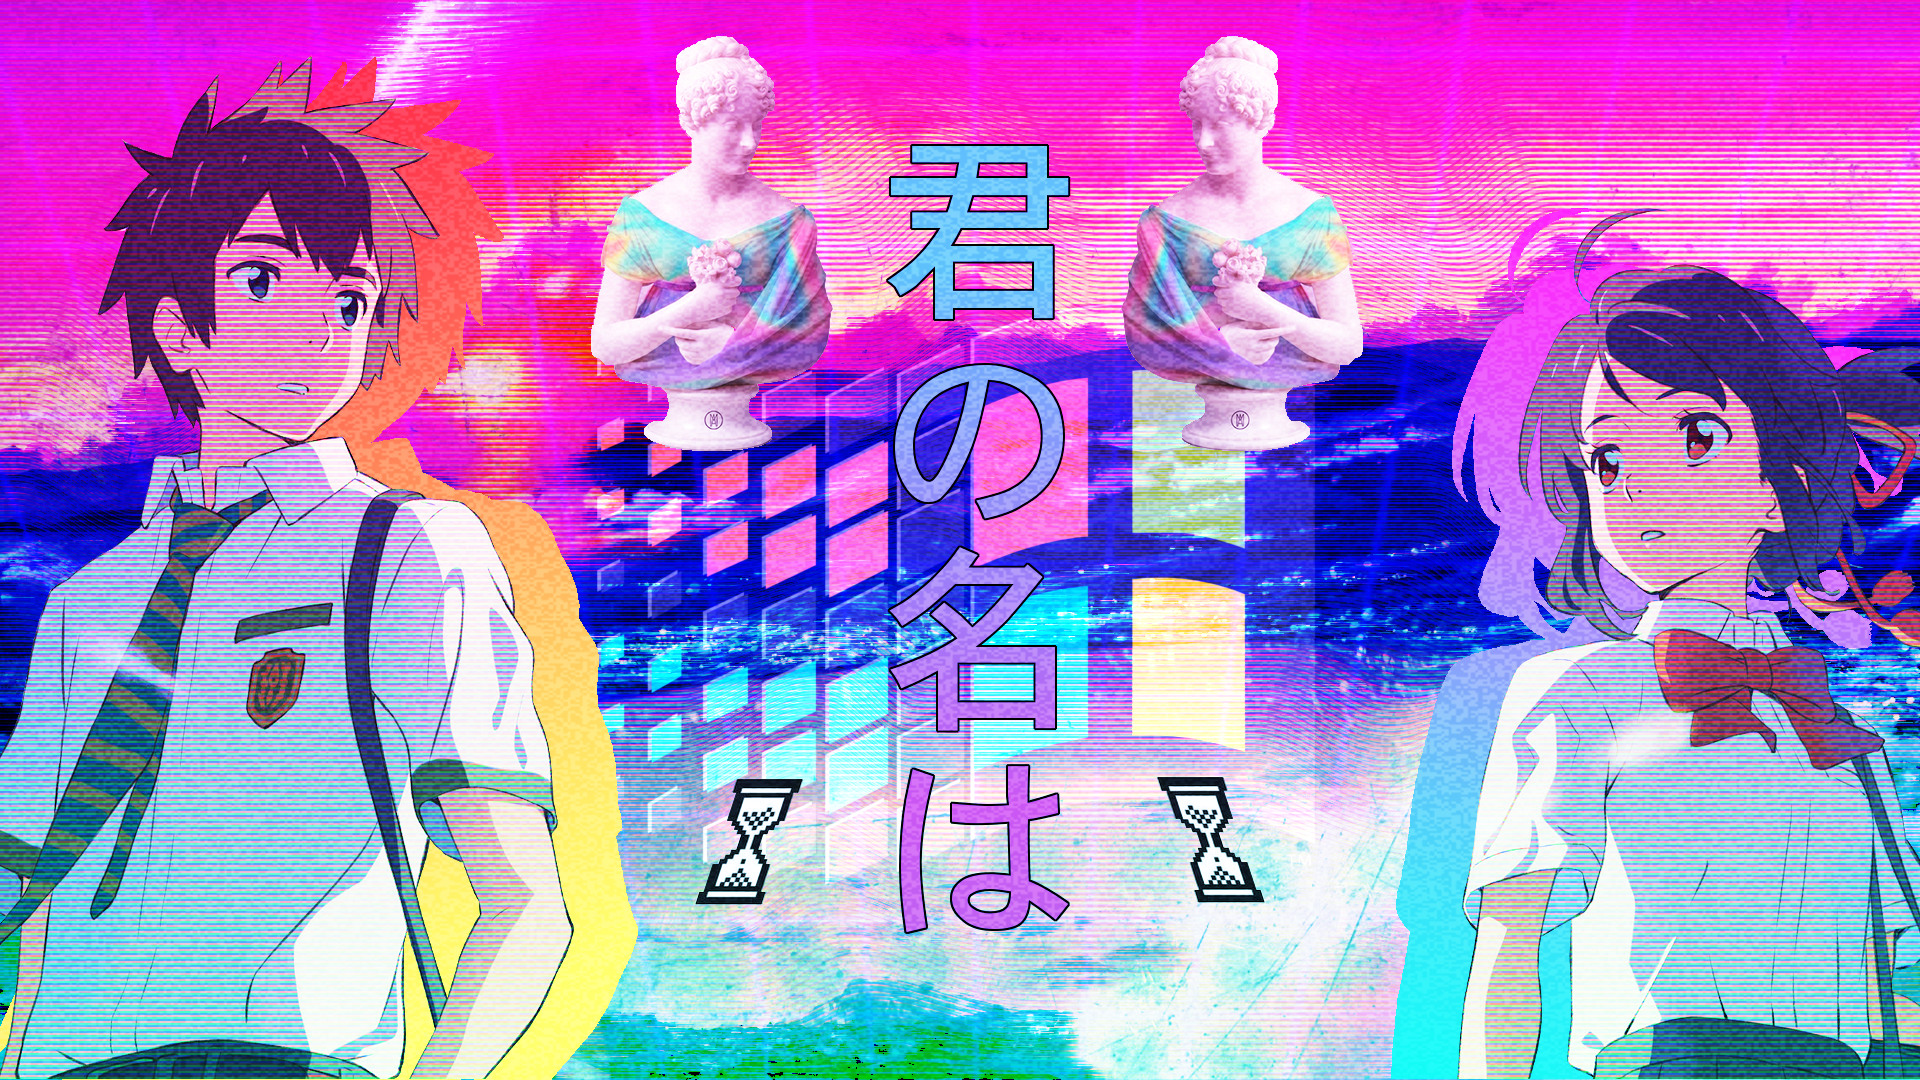 My Anime Vaporwave Wallpaper #06 By Iamthebest052 On